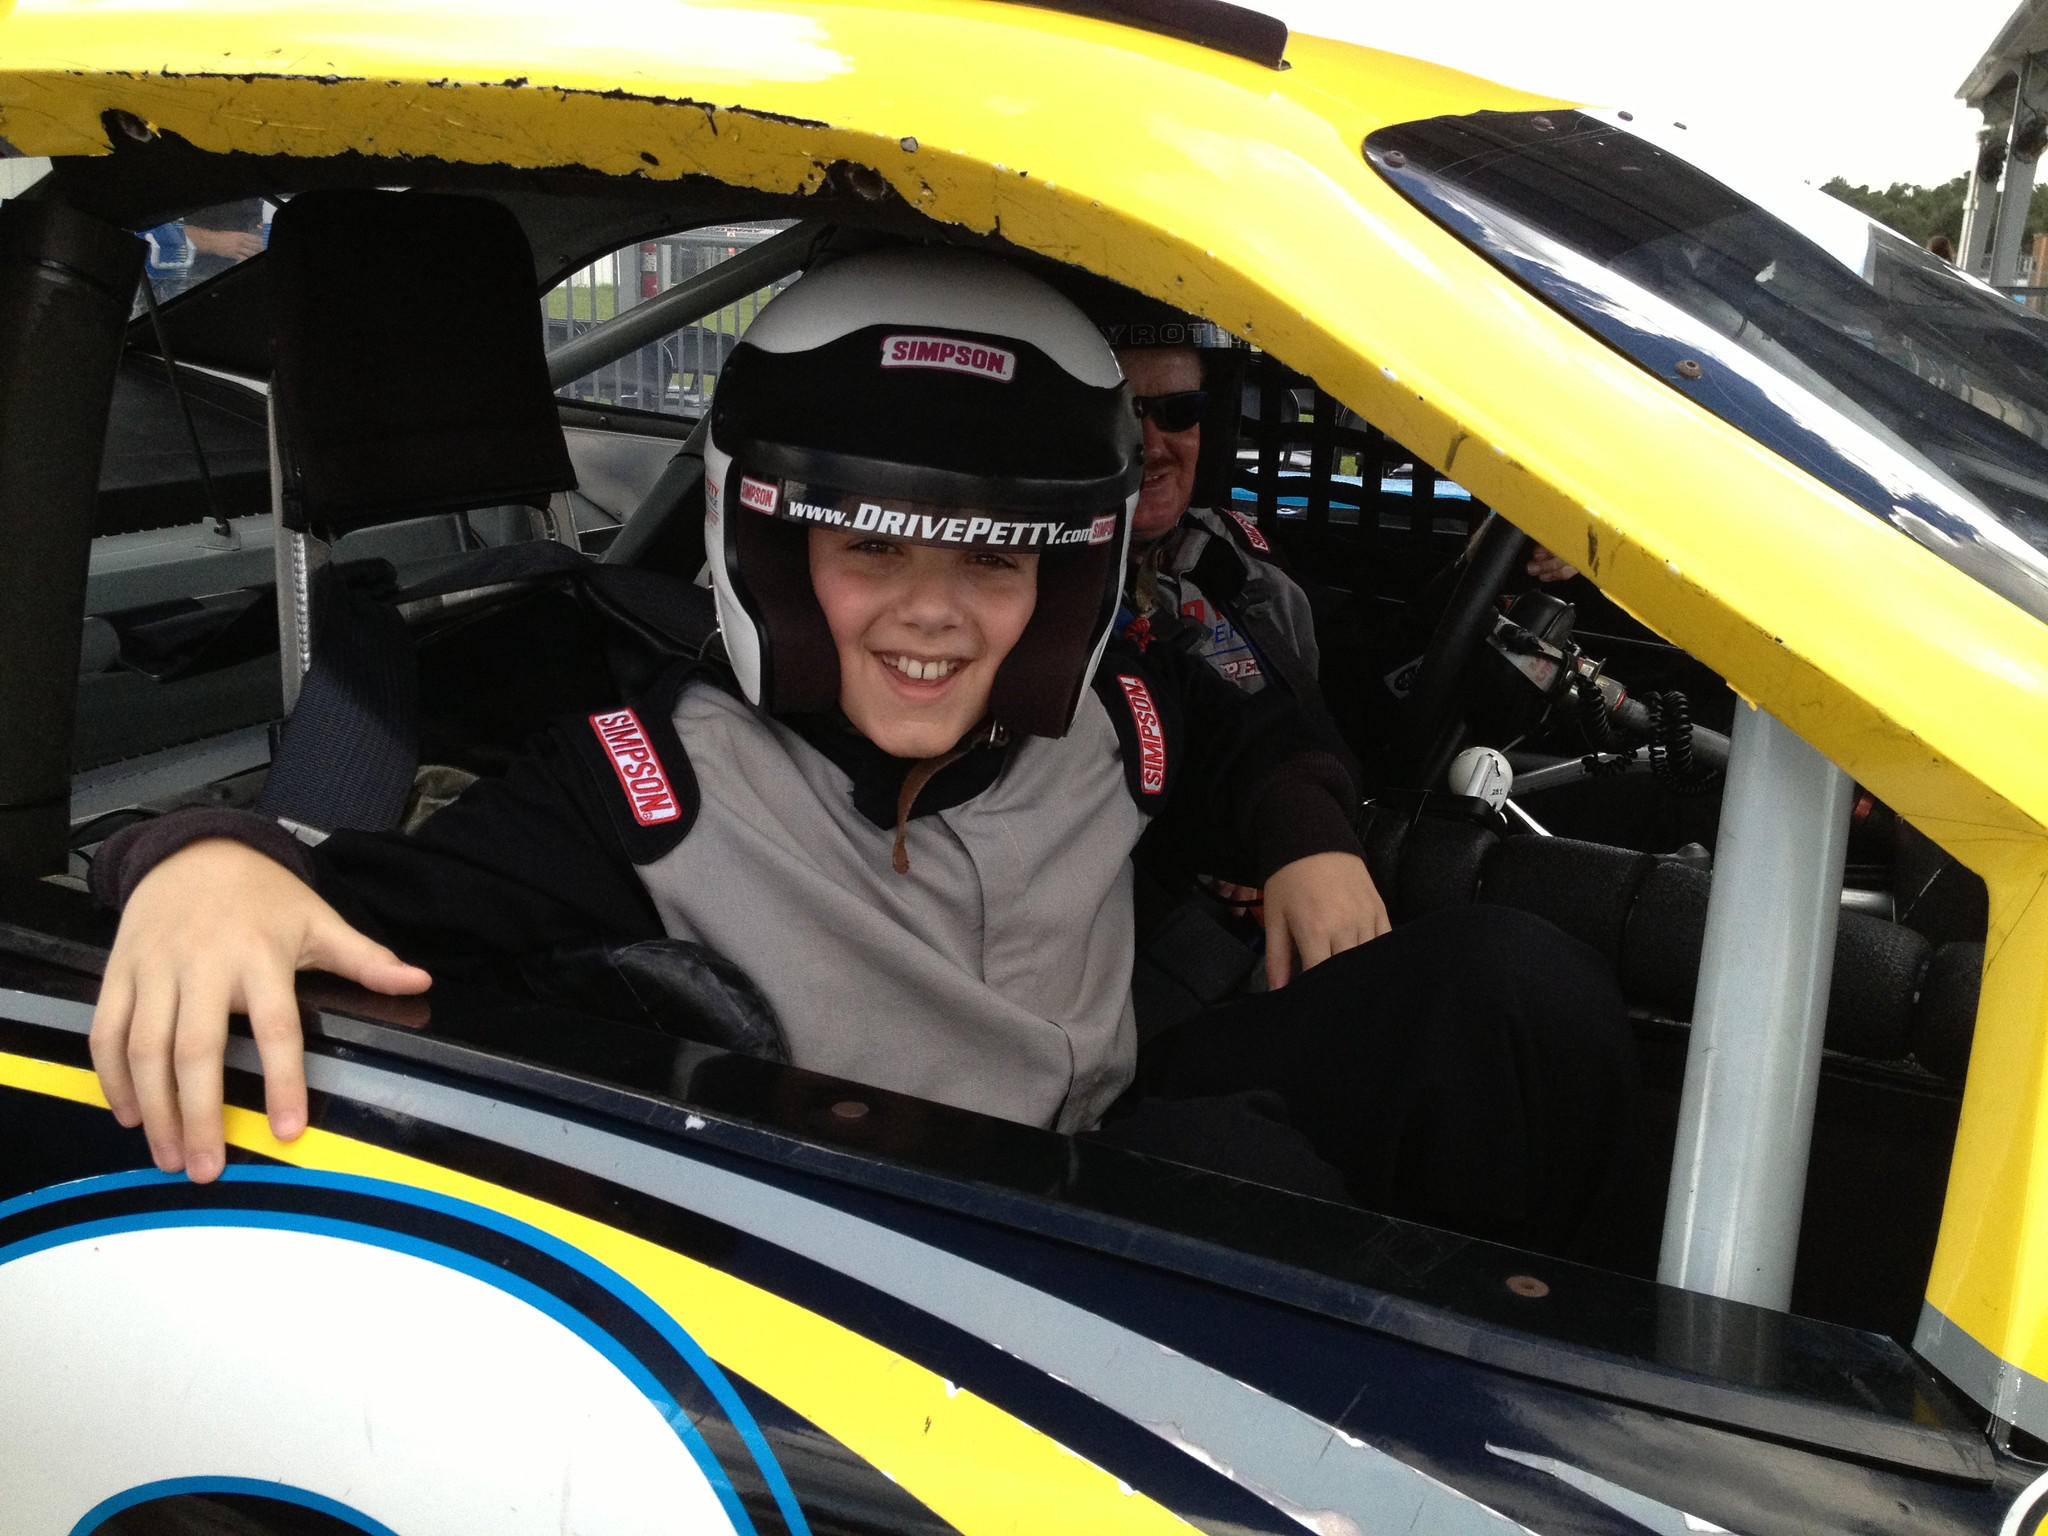 Ian Laviolette, 12, of Cooper City, rides in a car during the Junior Ride-Along at the Ricard Petty Driving Experience at Walt Disney World Speedway.